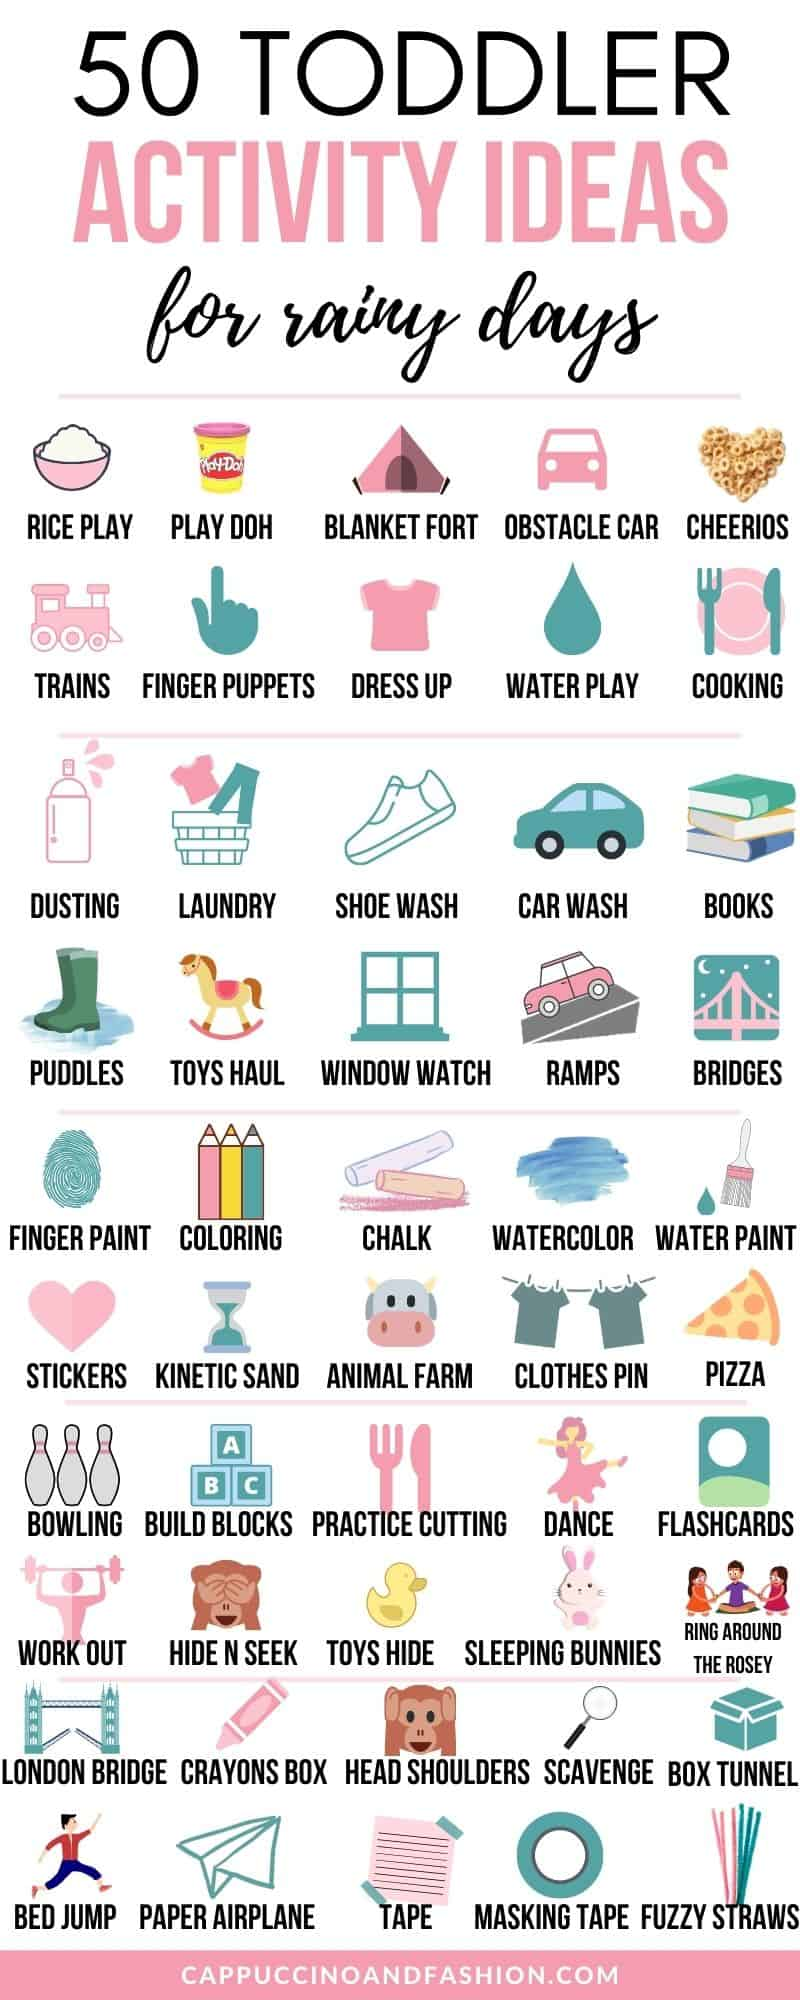 50 Toddler Activity Ideas for Rainy Days at Home